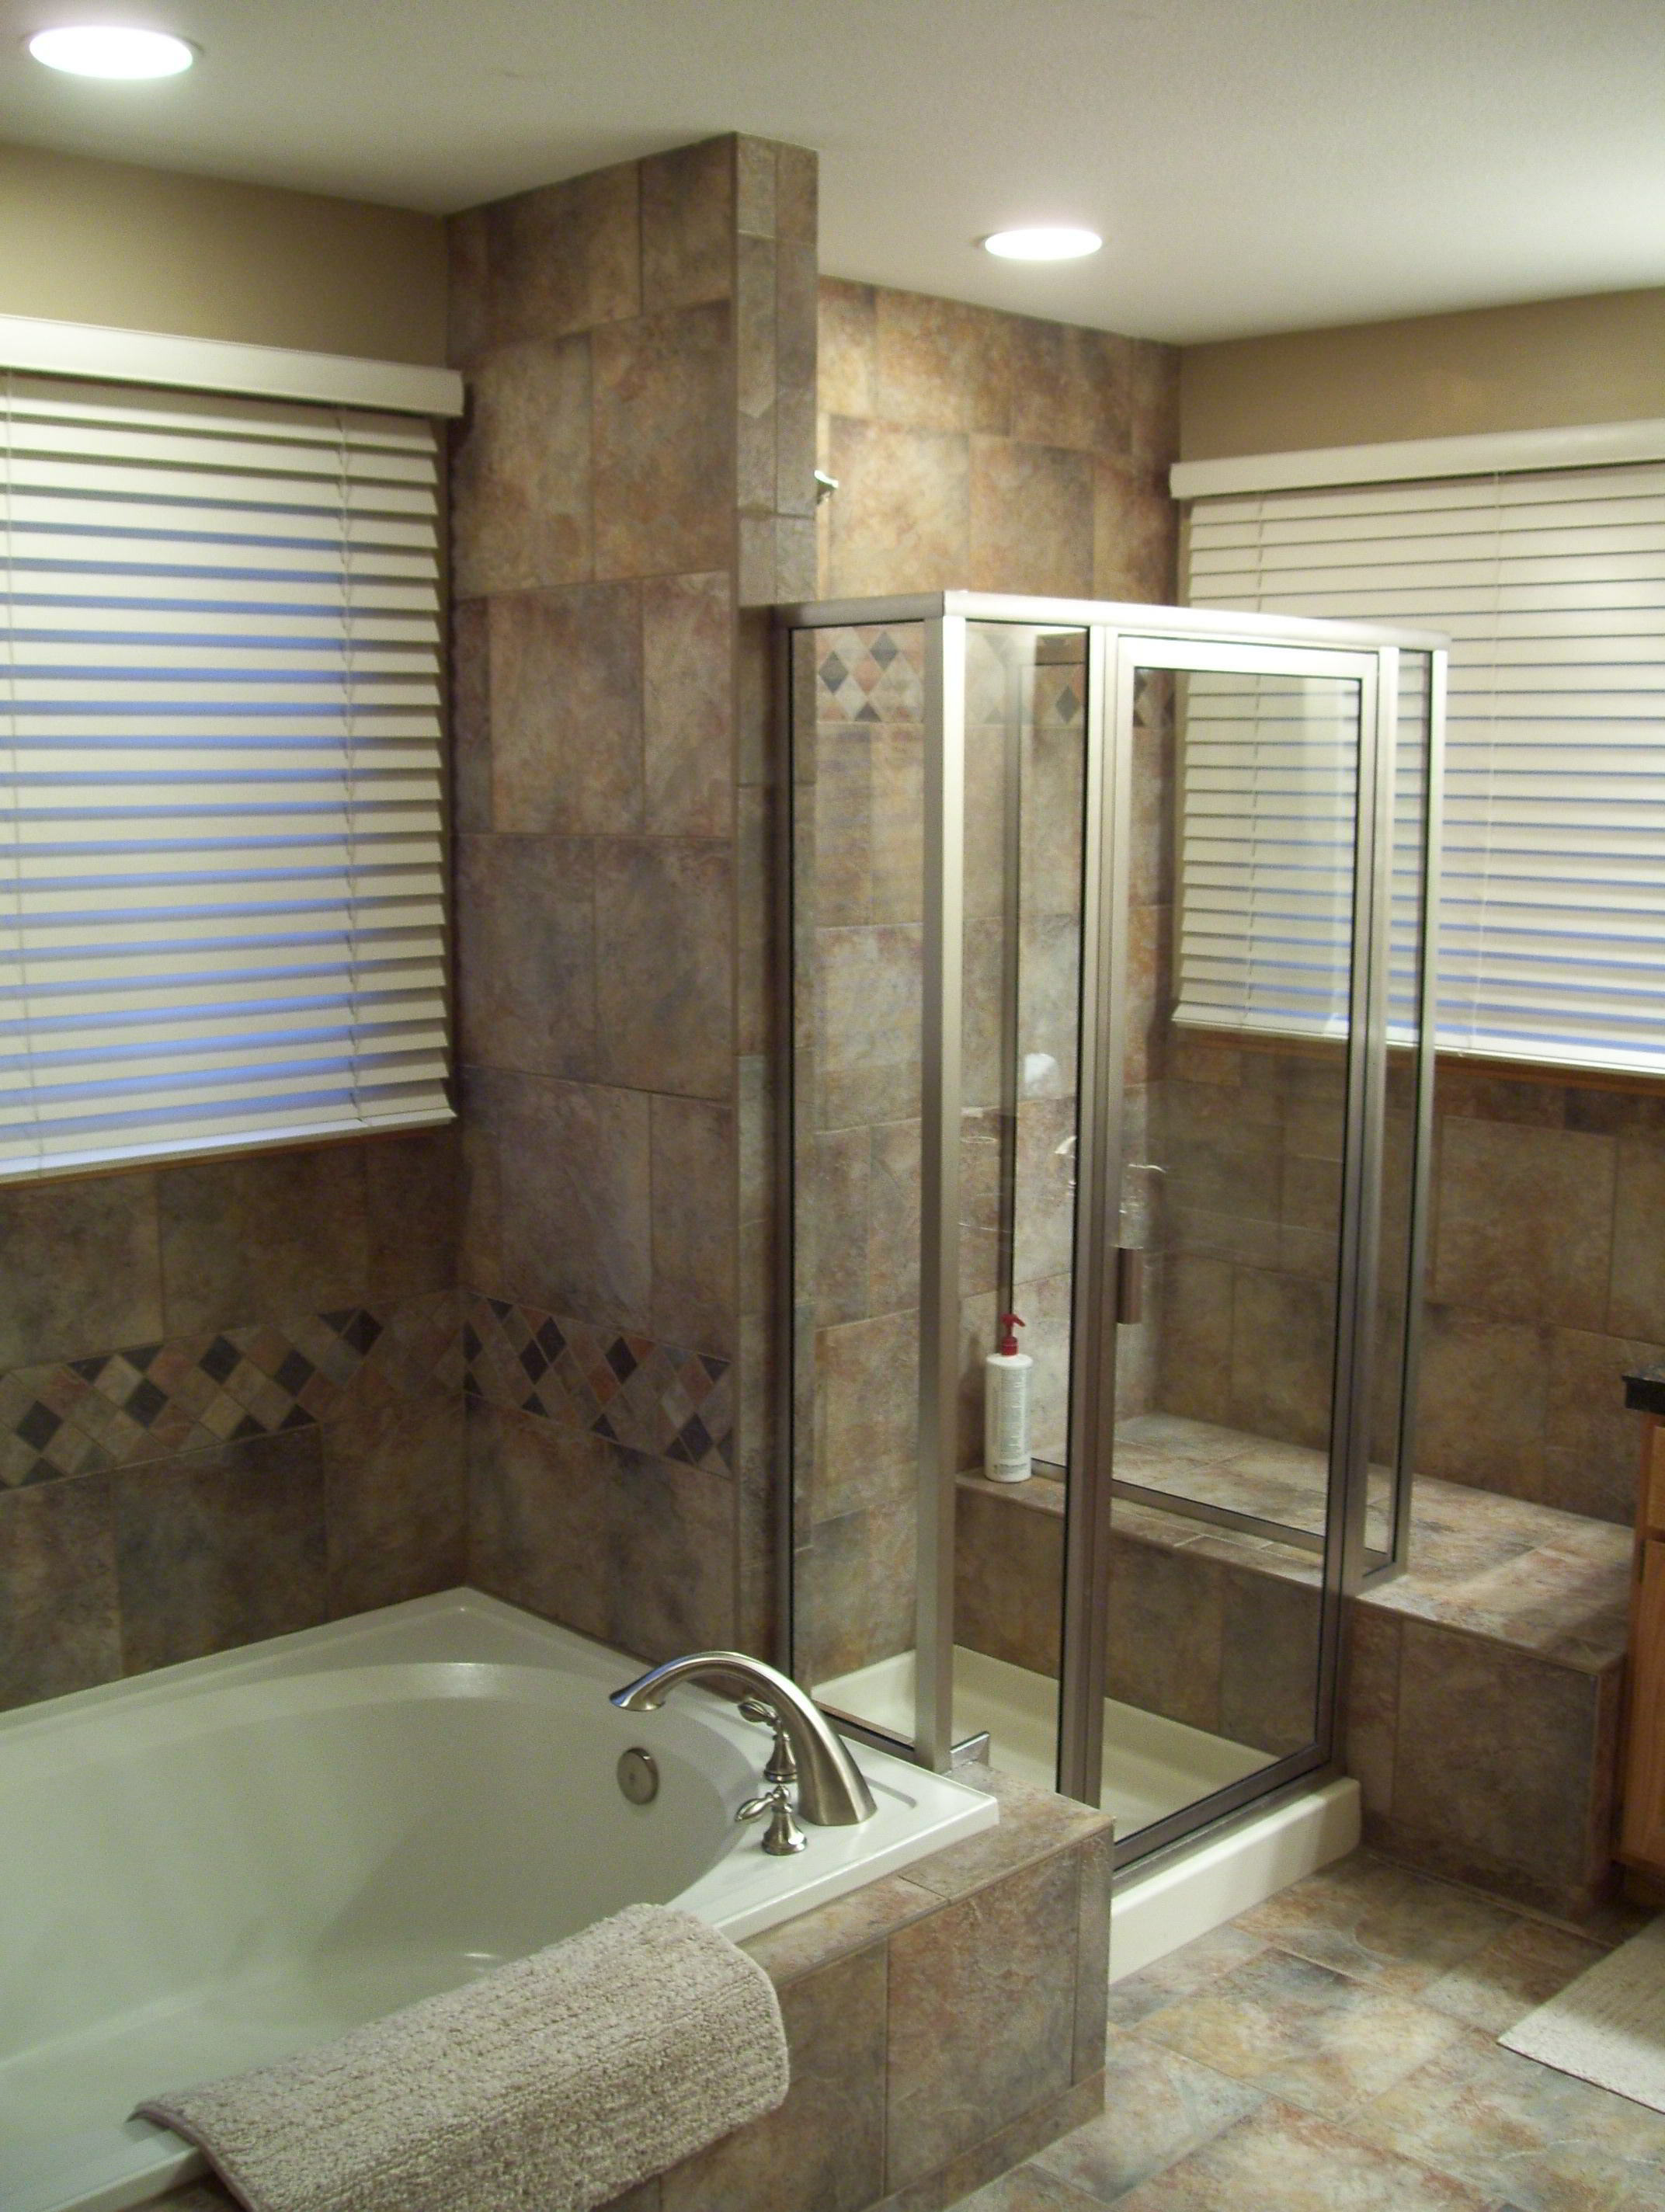 Bathroom Vanities Quad Cities plain bathroom remodel quad cities looking for a in design inspiration